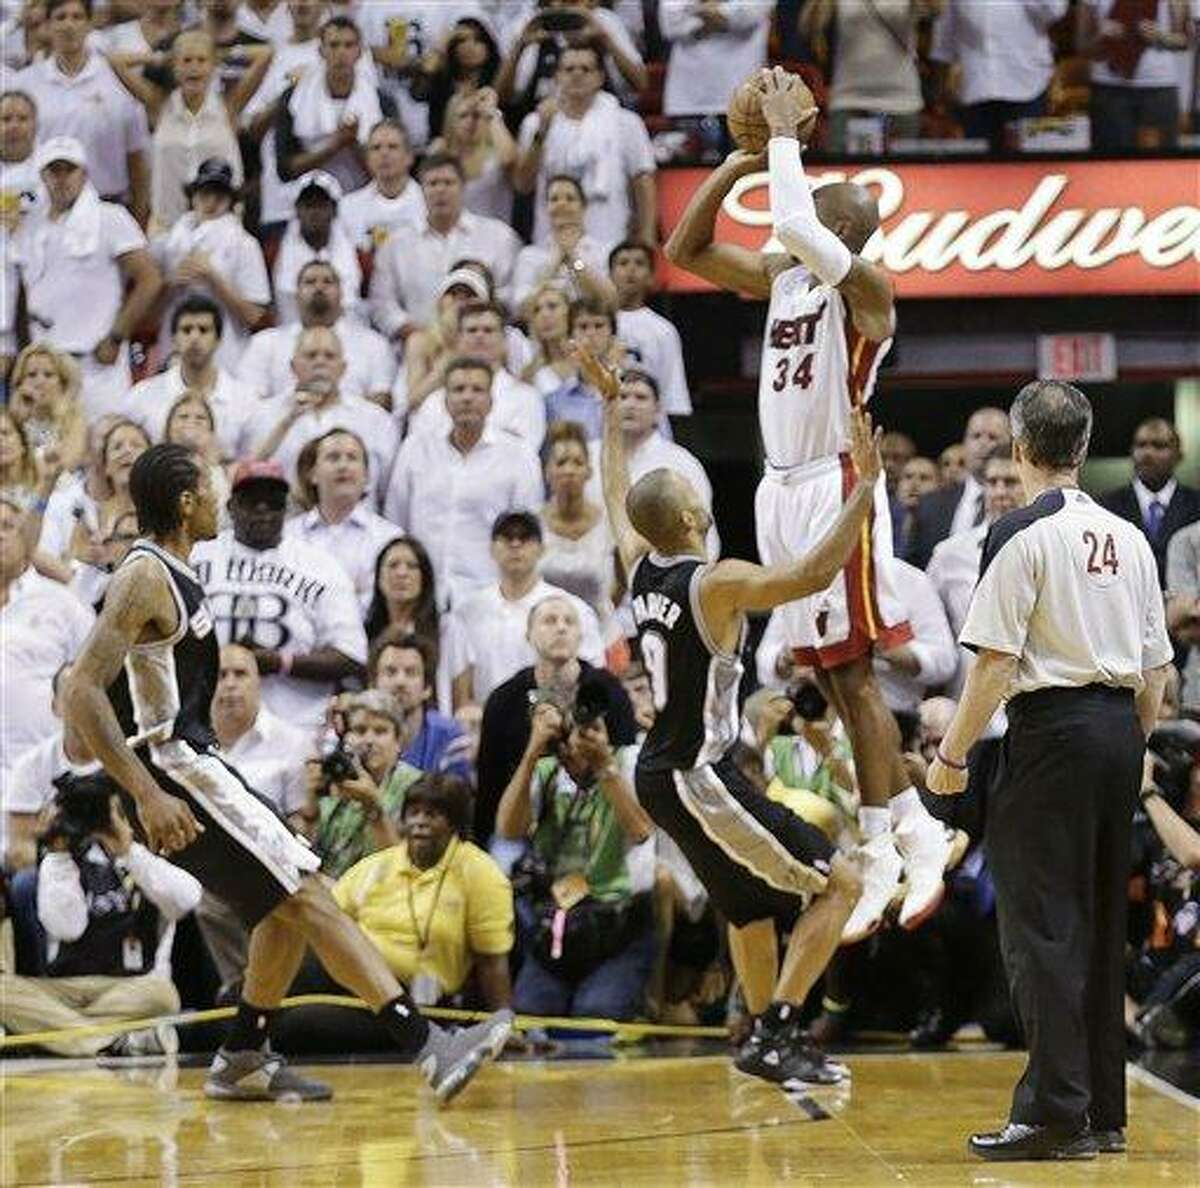 Miami Heat shooting guard Ray Allen (34) shoots a three-point basket in the end of regulation during the second half of Game 6 of the NBA Finals basketball game against the San Antonio Spurs, Wednesday, June 19, 2013 in Miami. (AP Photo/Lynne Sladky)